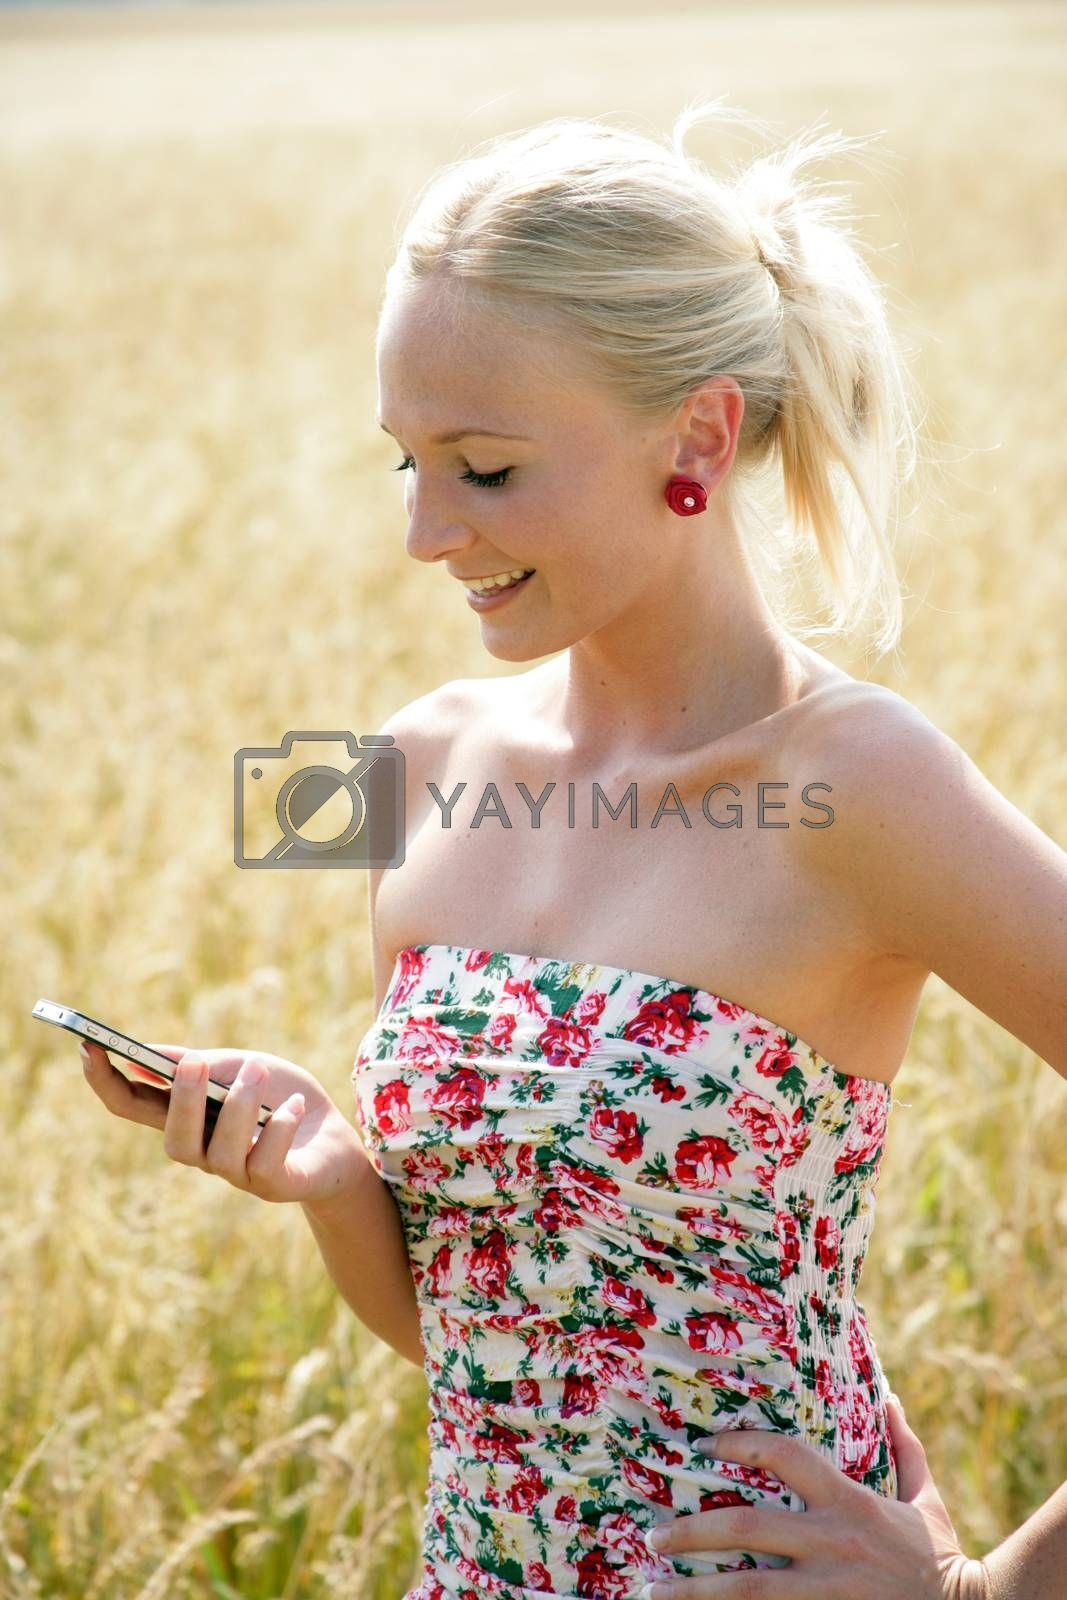 Young attractive woman standing in a wheat field, looking at her cellphone. She looks happy and relaxed.